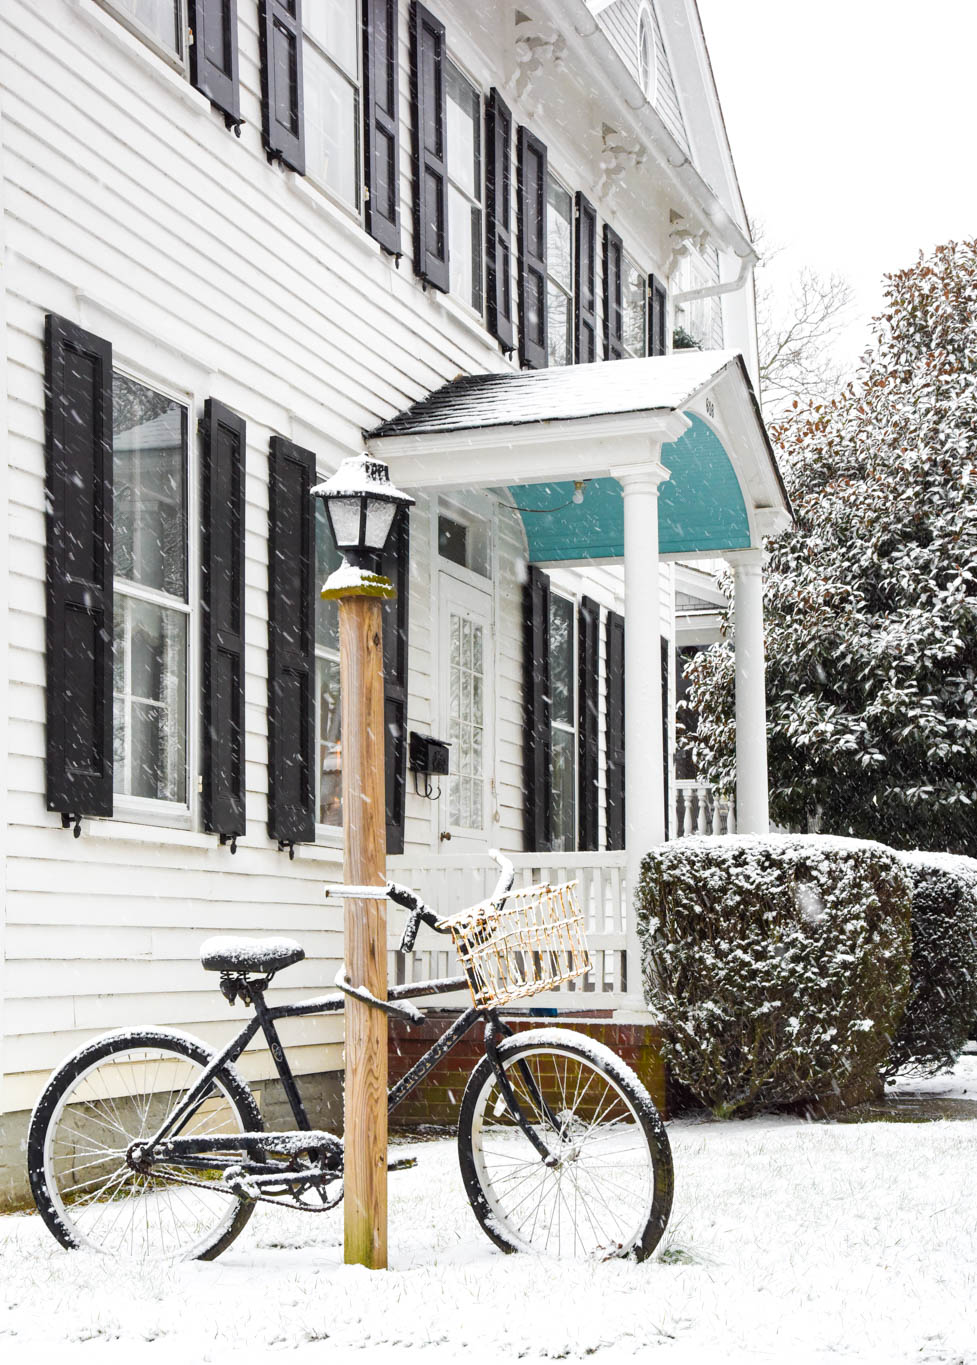 A bicycle in the snow on Hughes Street